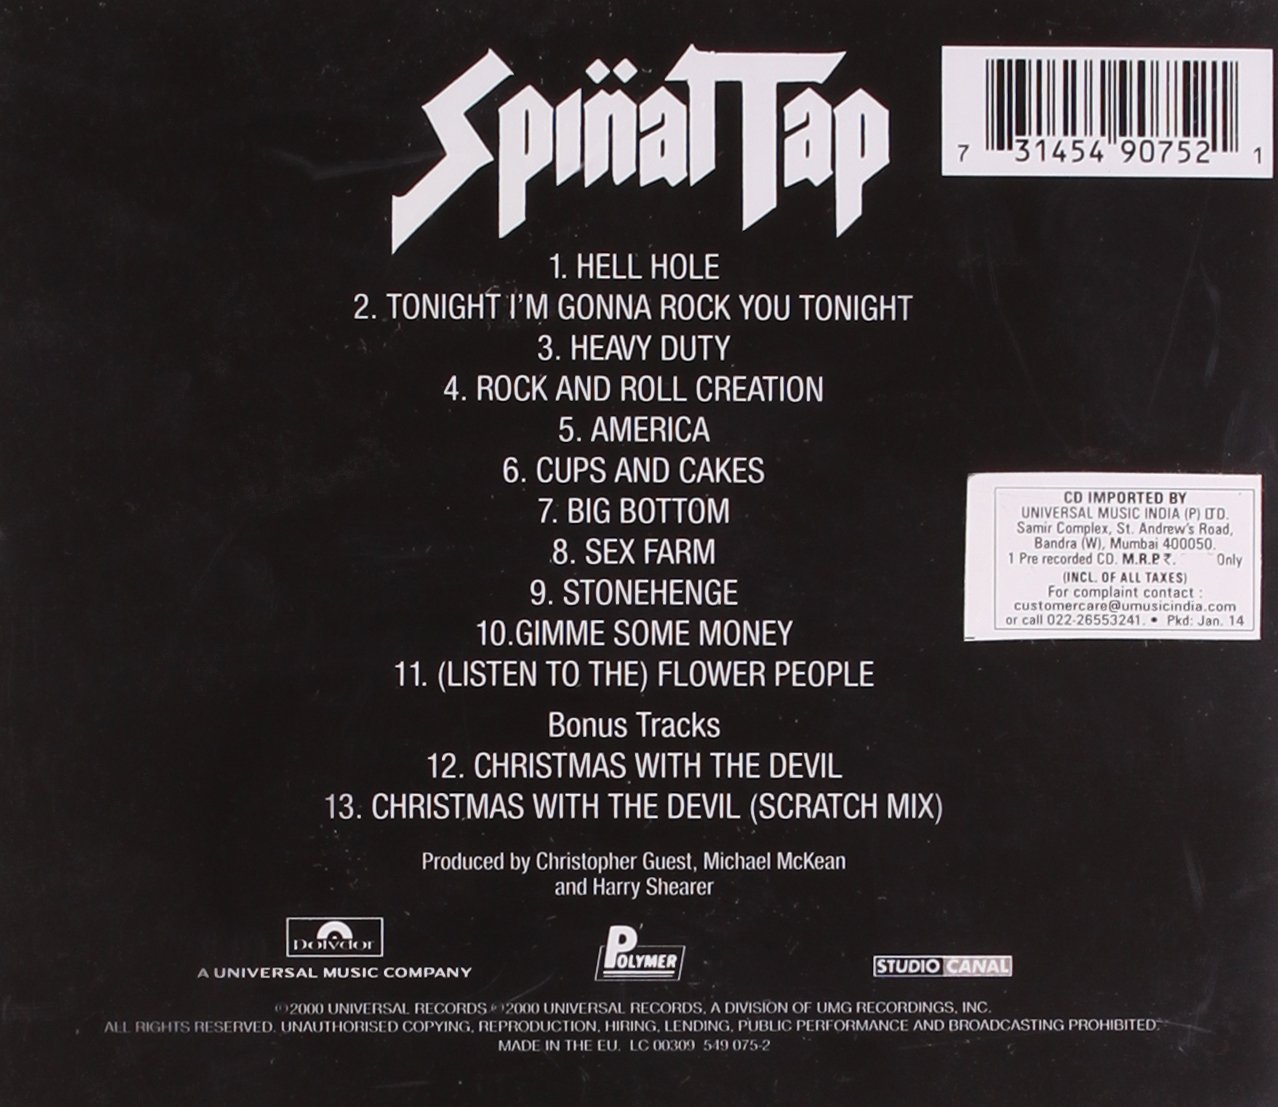 Think, what Spinal tap sex farm lyrics would you